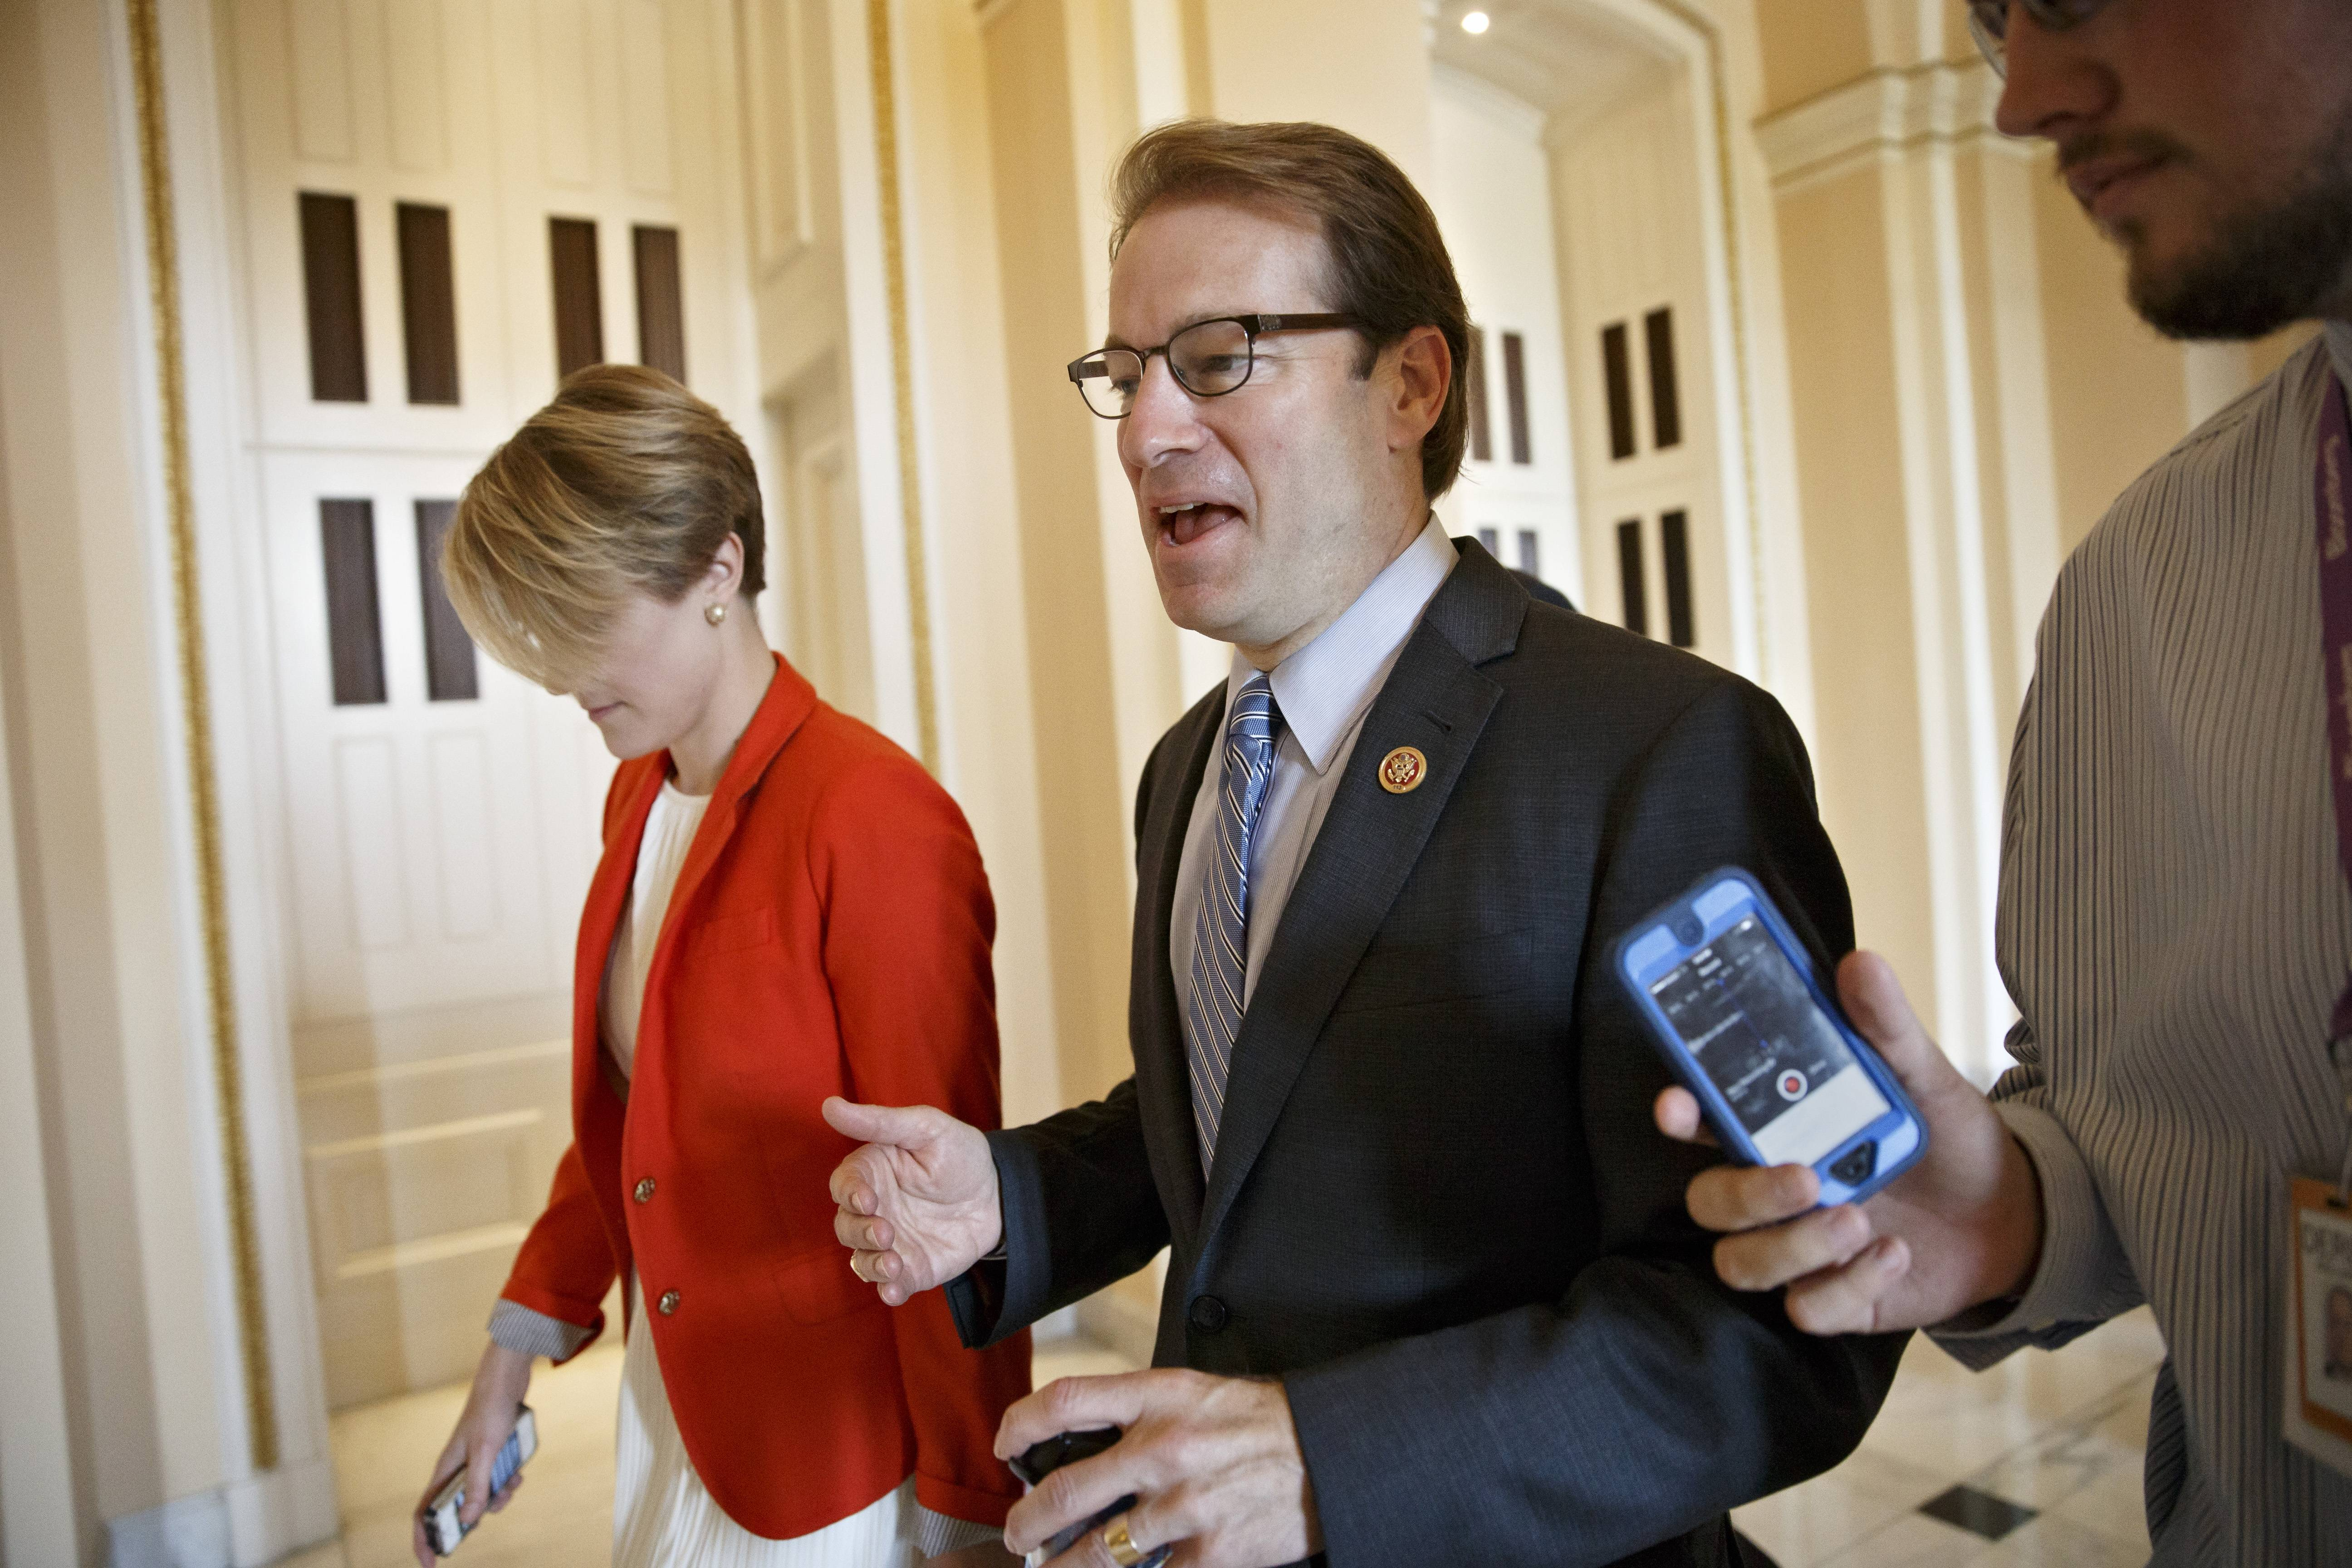 U.S. Rep. Peter Roskam of Wheaton speaks with a reporter on Capitol Hill Thursday.